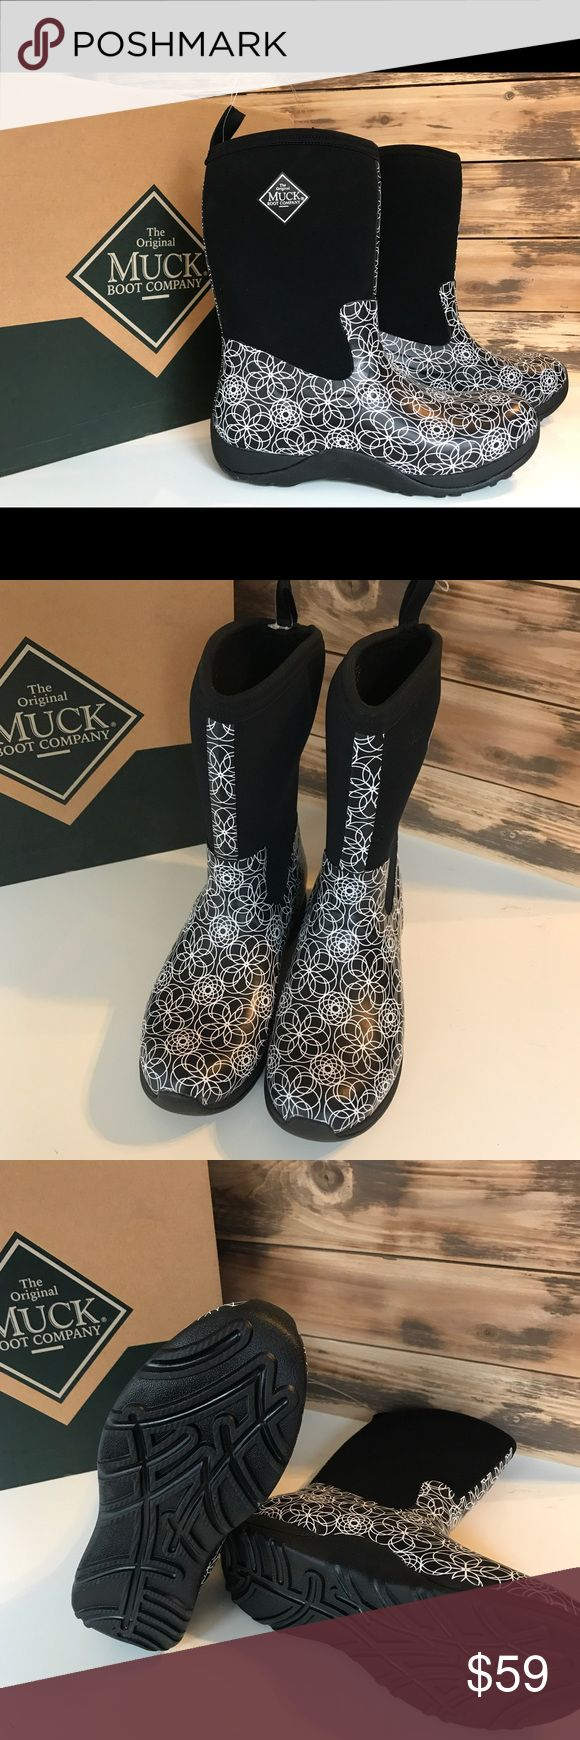 Brand New Muck Boots Brand New! The Original Muck Boot. Size 10 in women. The Original Muck Boot Company Shoes Winter & Rain Boots